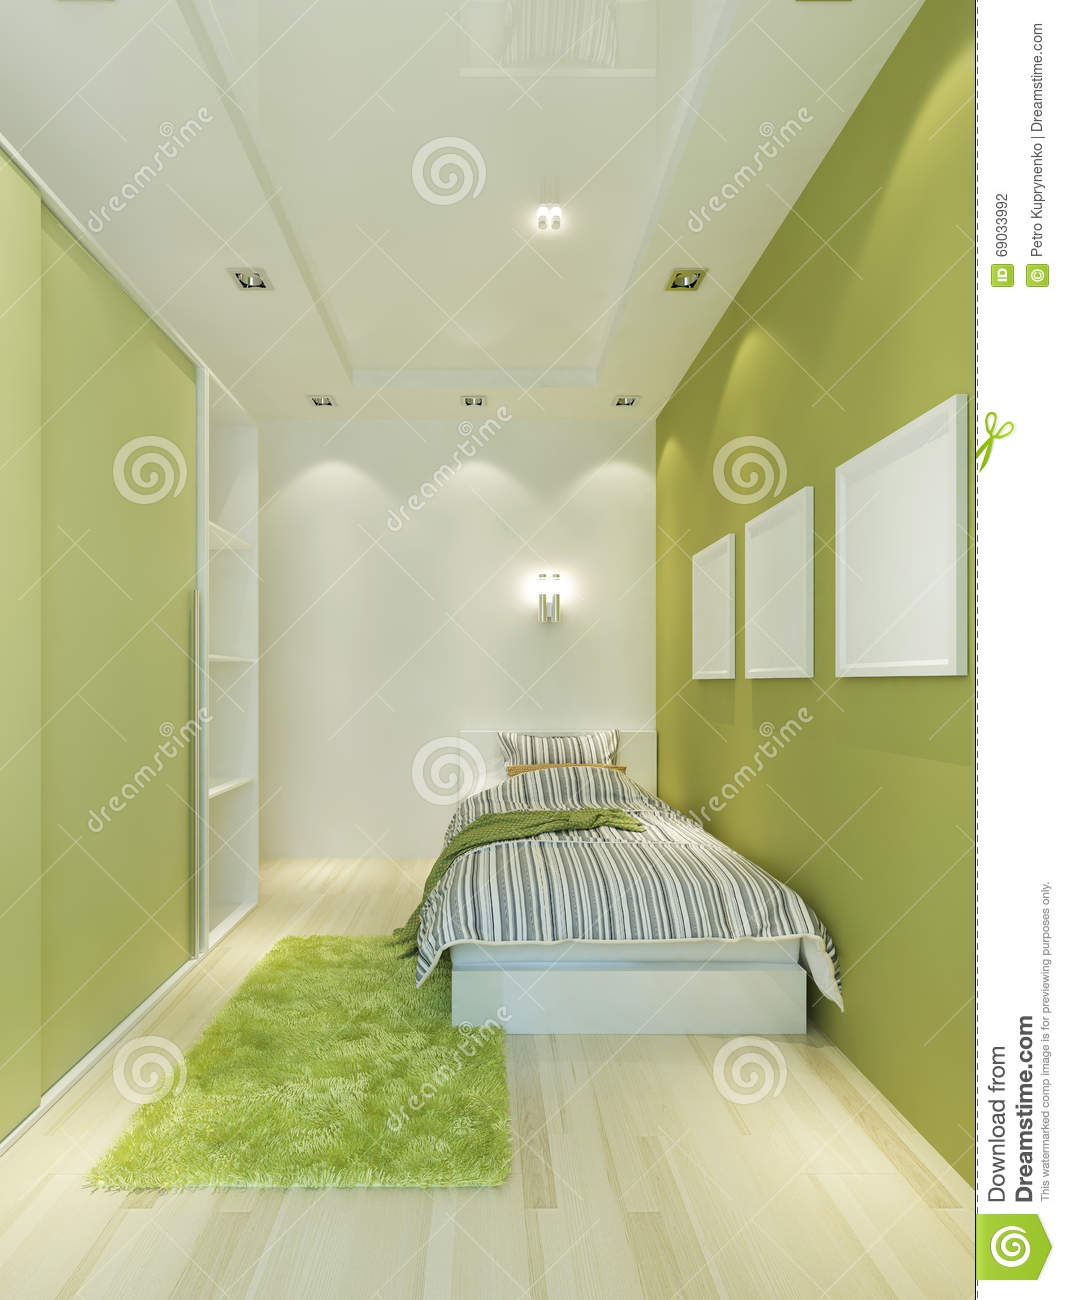 Light green room colors - Narrow Children S Room In A Modern Style In Light Green Colors